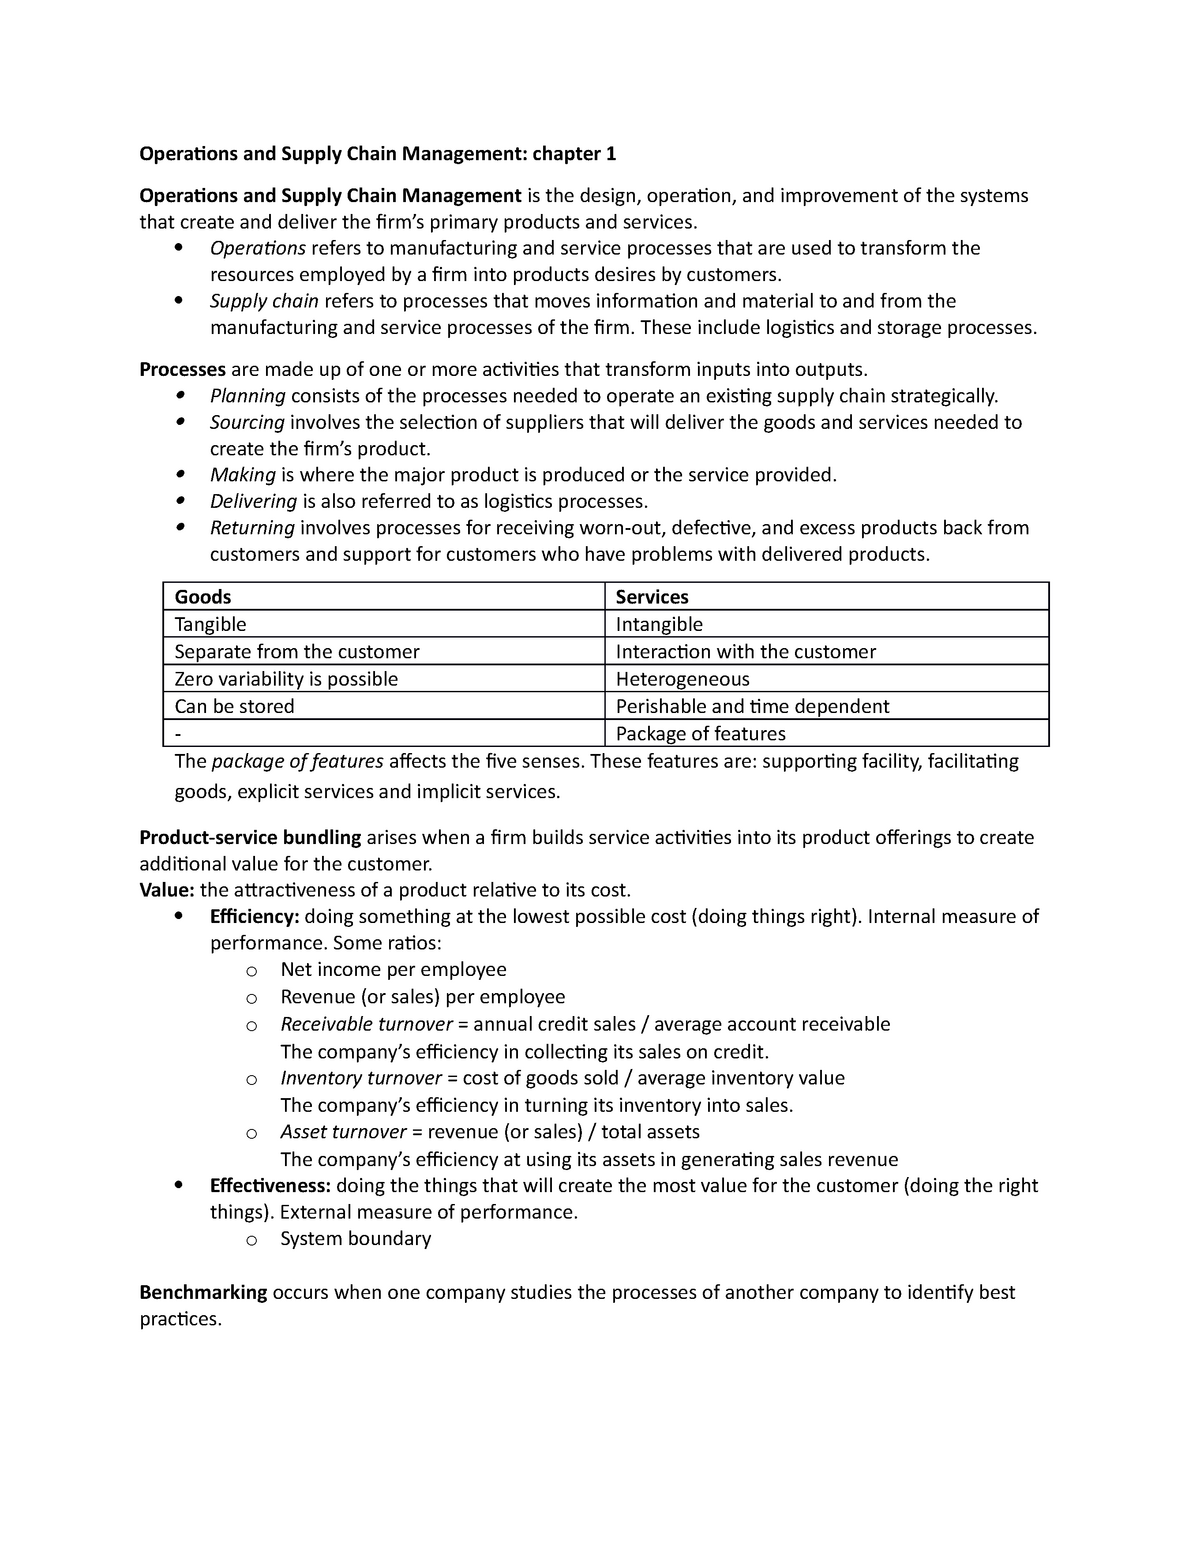 Operations and Supply Chain Management summary (Automatisch